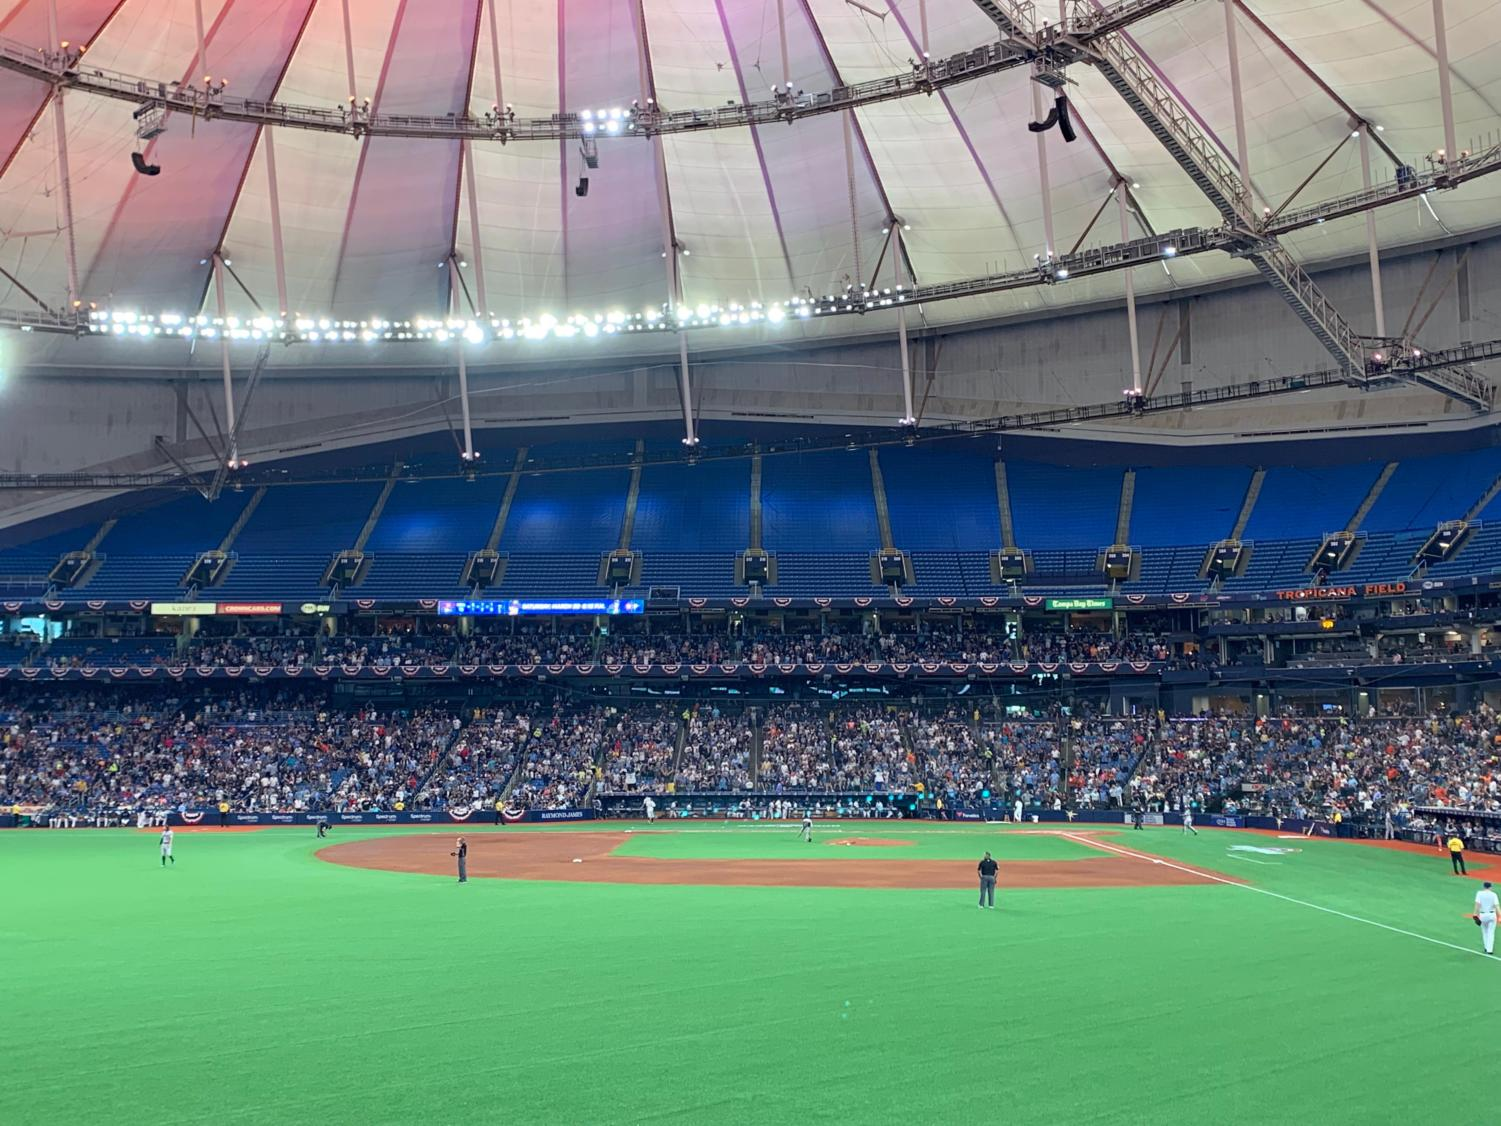 The Rays added lights to the top of the stadium to make it a fun seventh inning stretch.